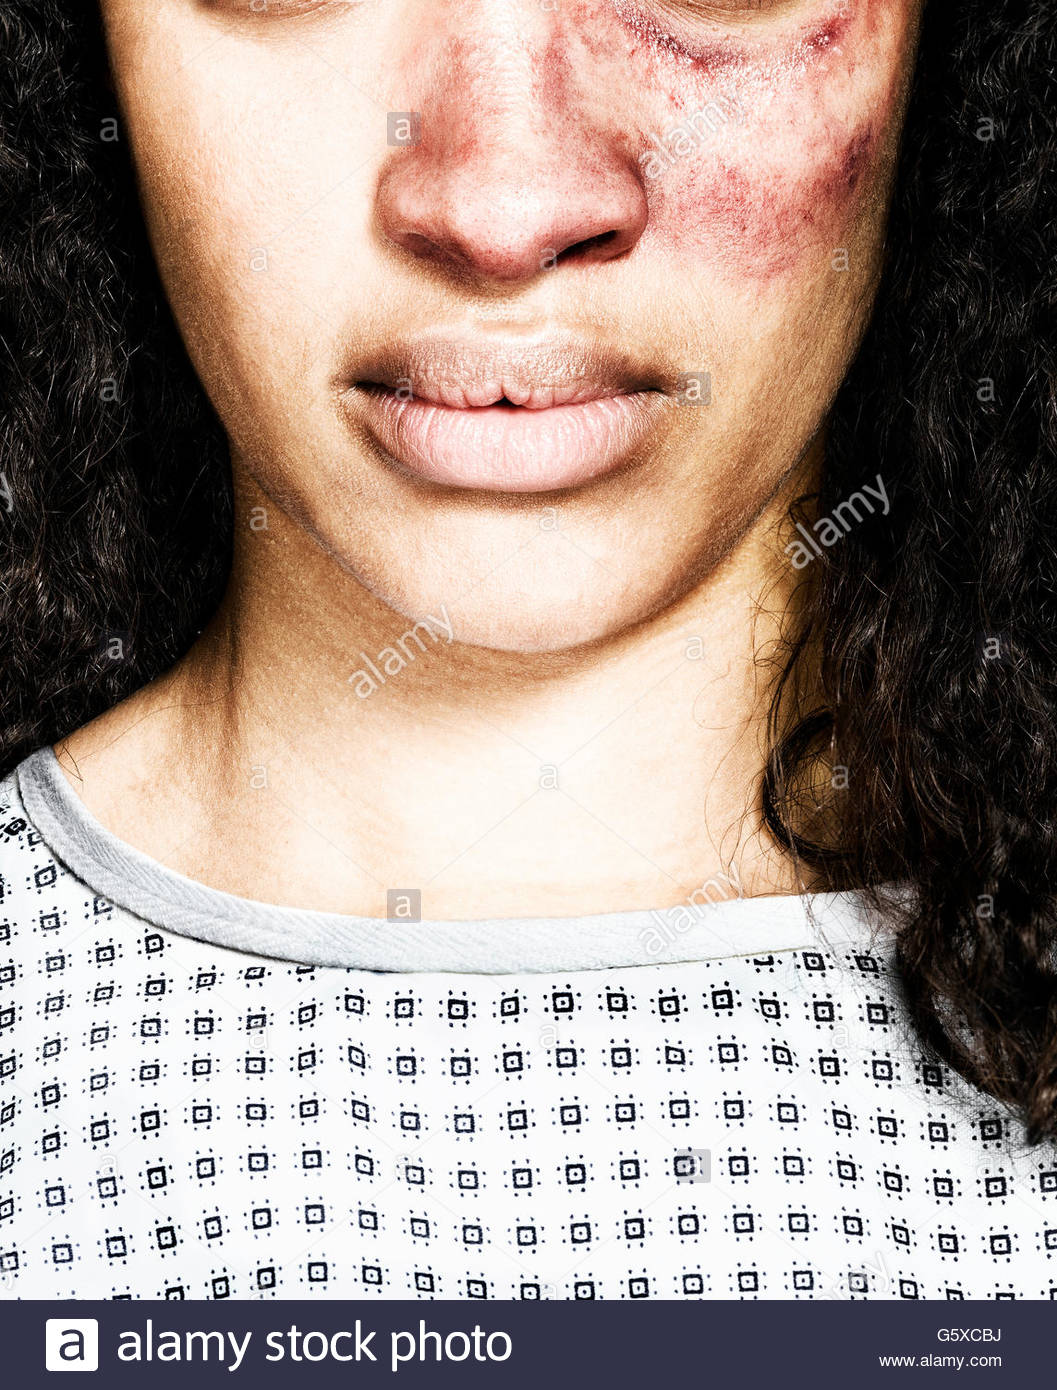 Young woman with badly bruised face - Stock Image